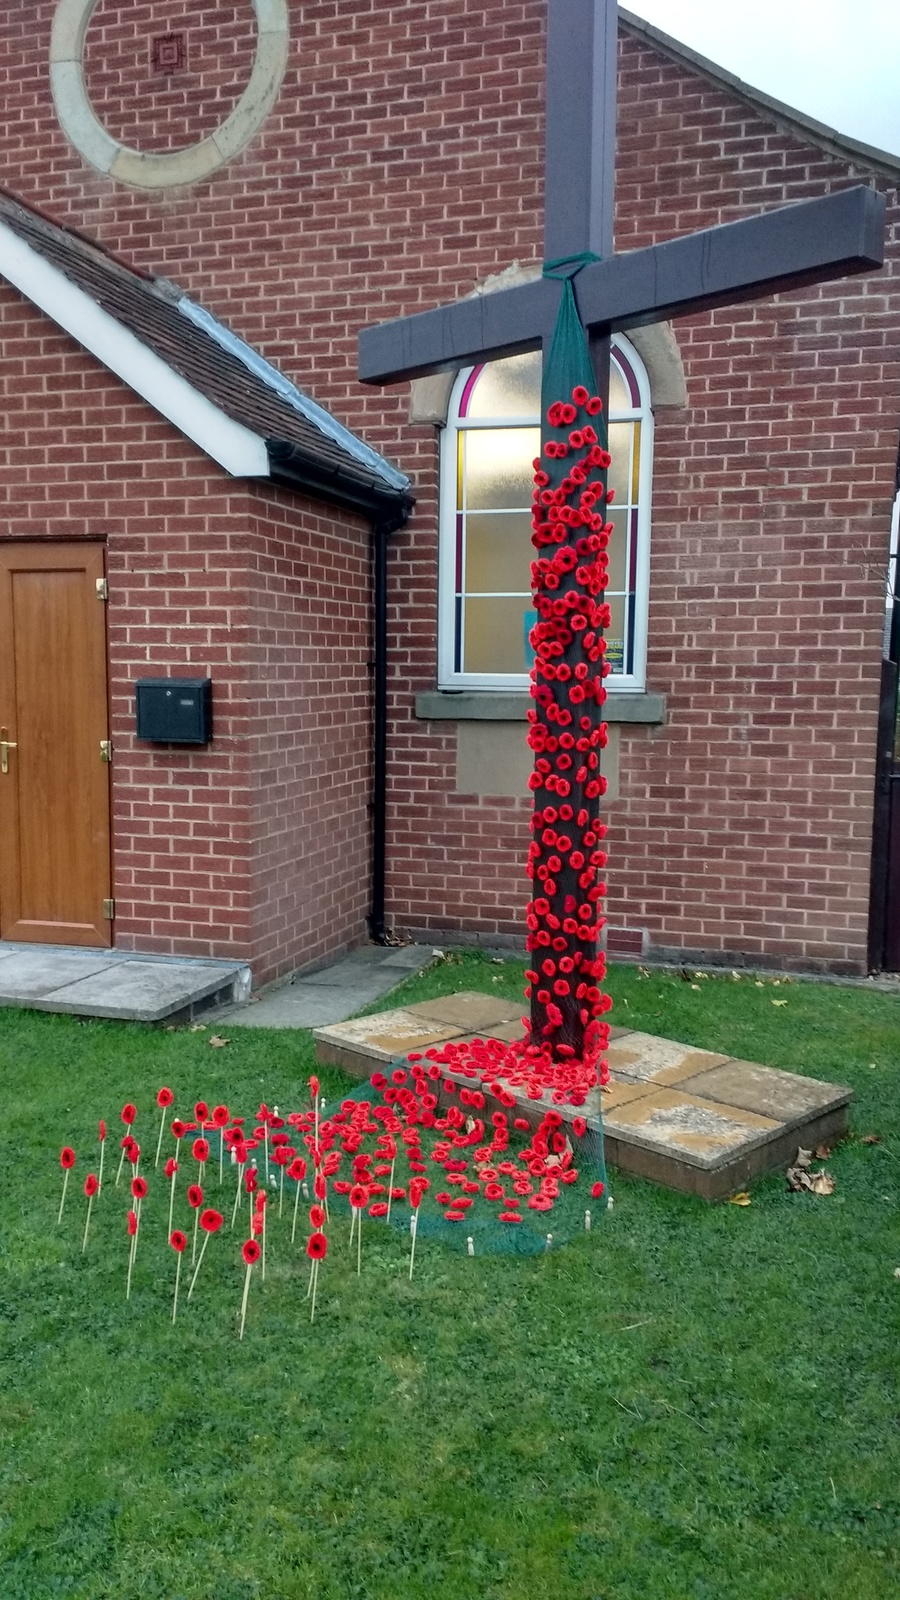 Hand-knitted poppies on display over Remembrance Weekend 2017